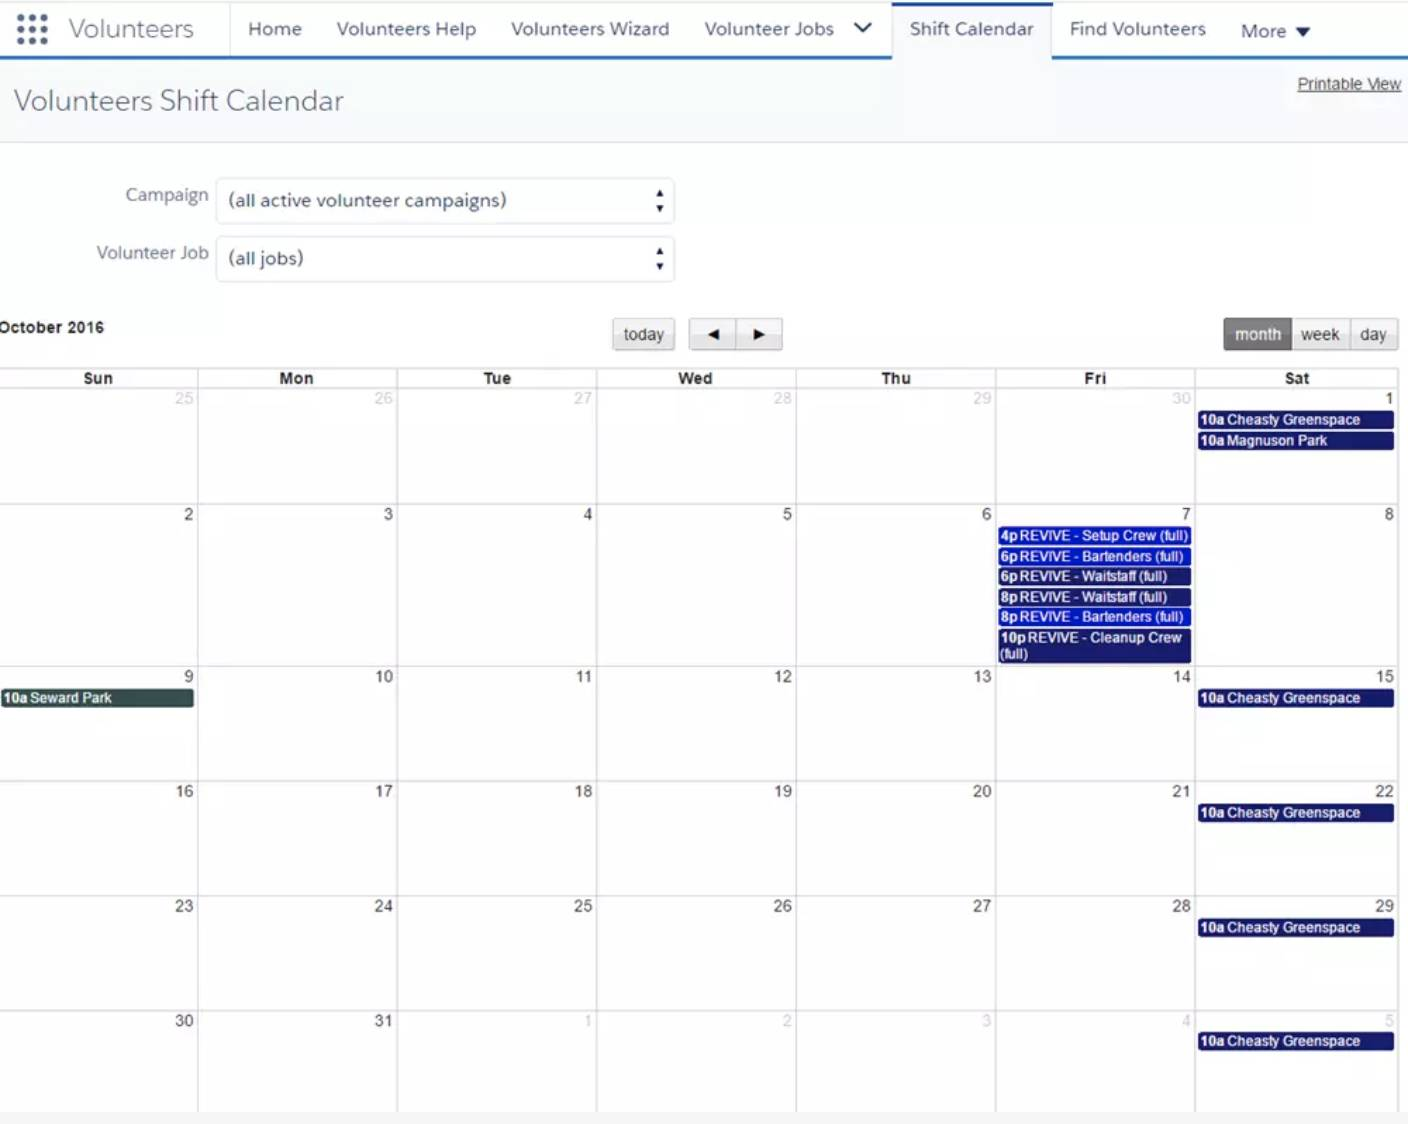 Screenshot of Volunteers Shift Calendar.